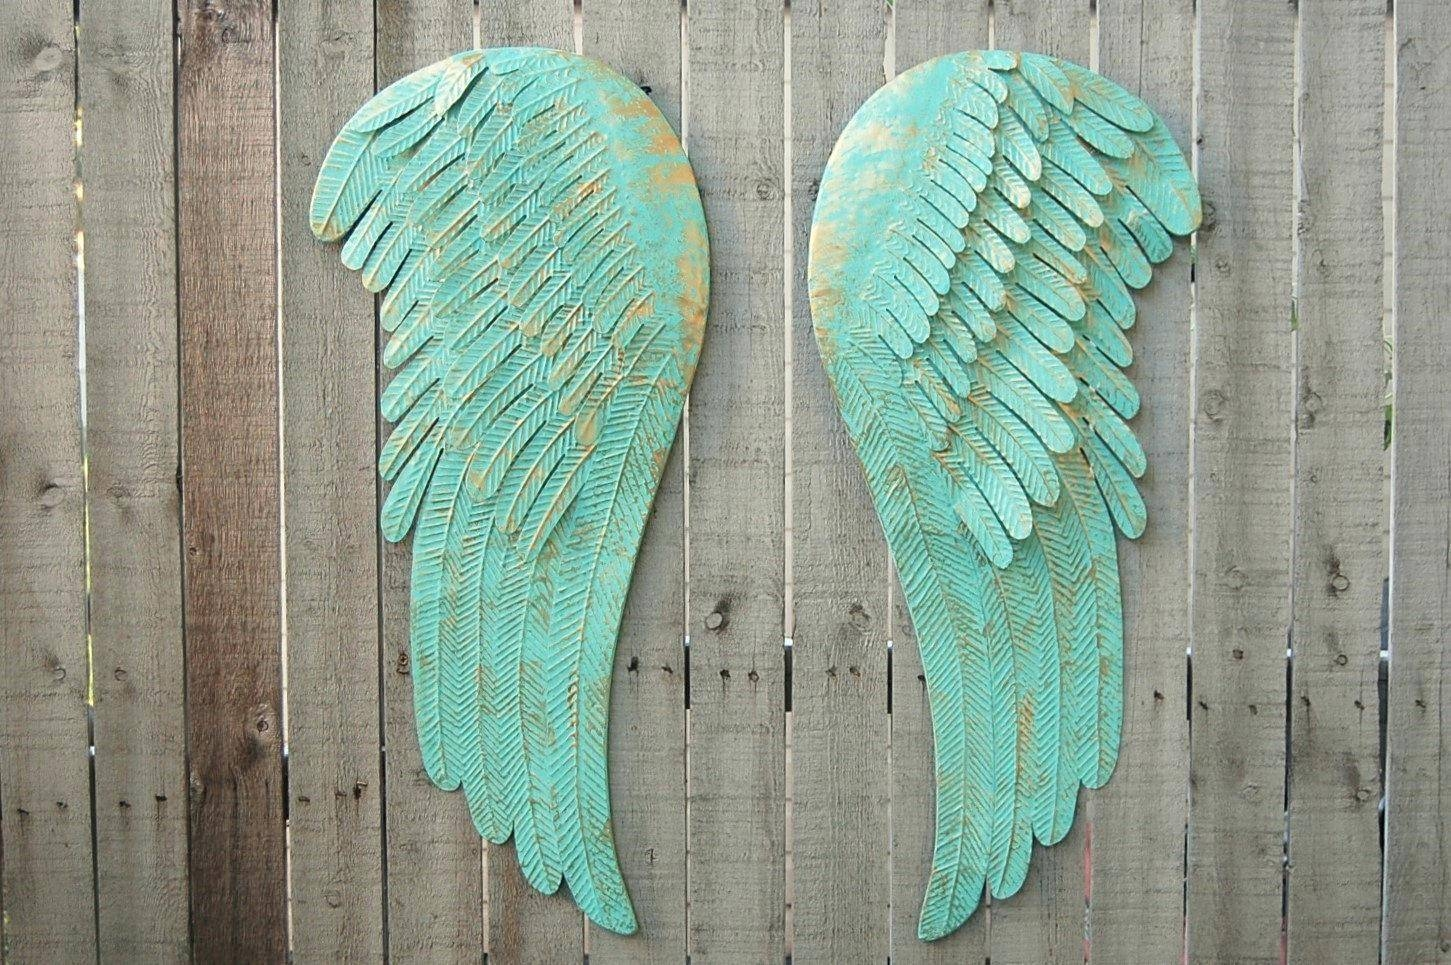 Articles With Angel Wings Wall Art London Label: Marvellous Angel Throughout Current Angel Wings Sculpture Plaque Wall Art (View 11 of 20)